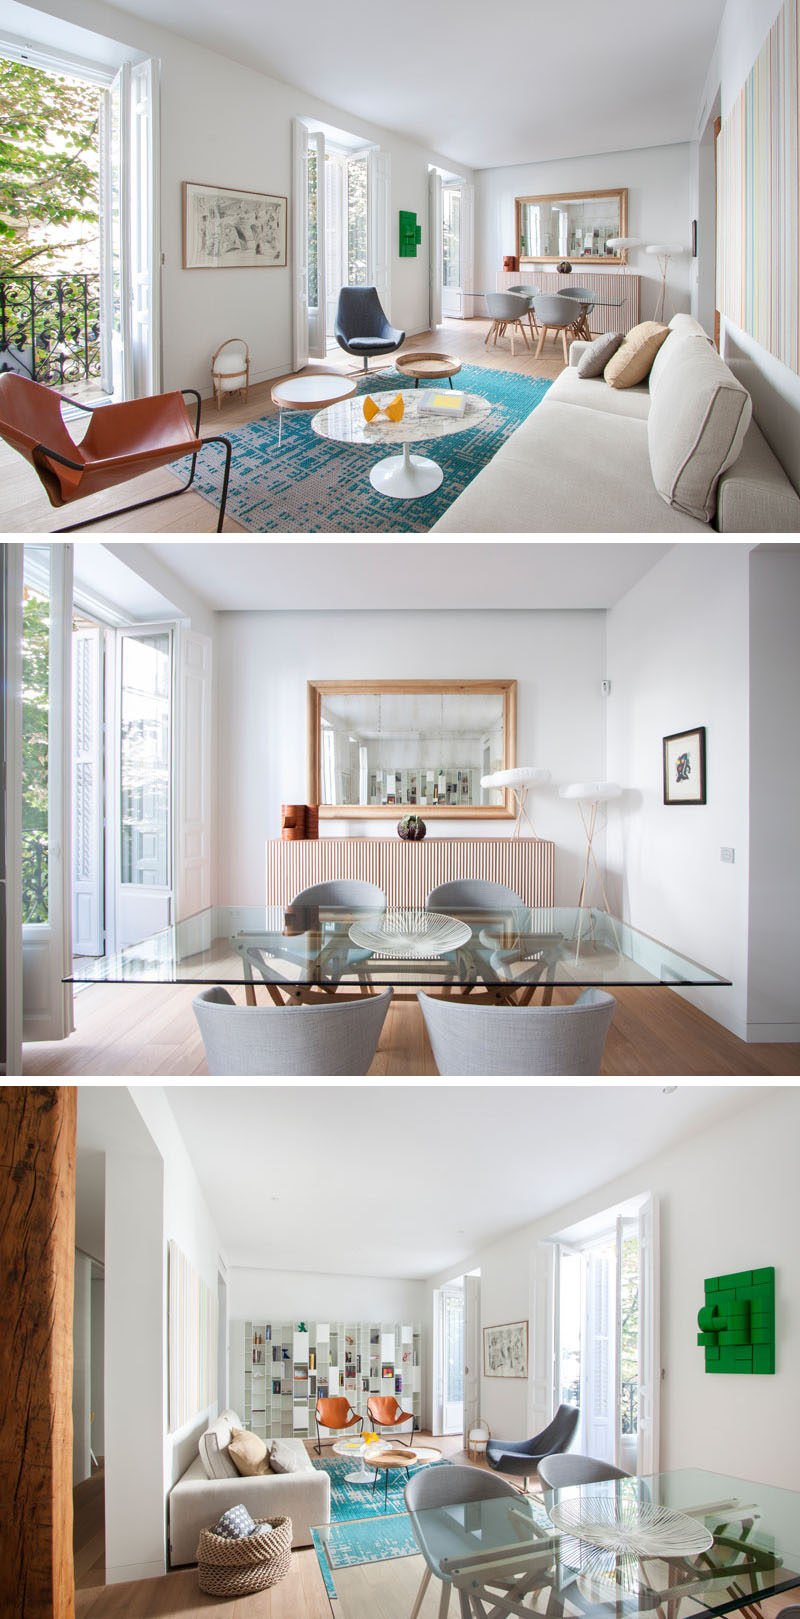 A Bright And Comfortable Apartment Interior Design In Madrid ...